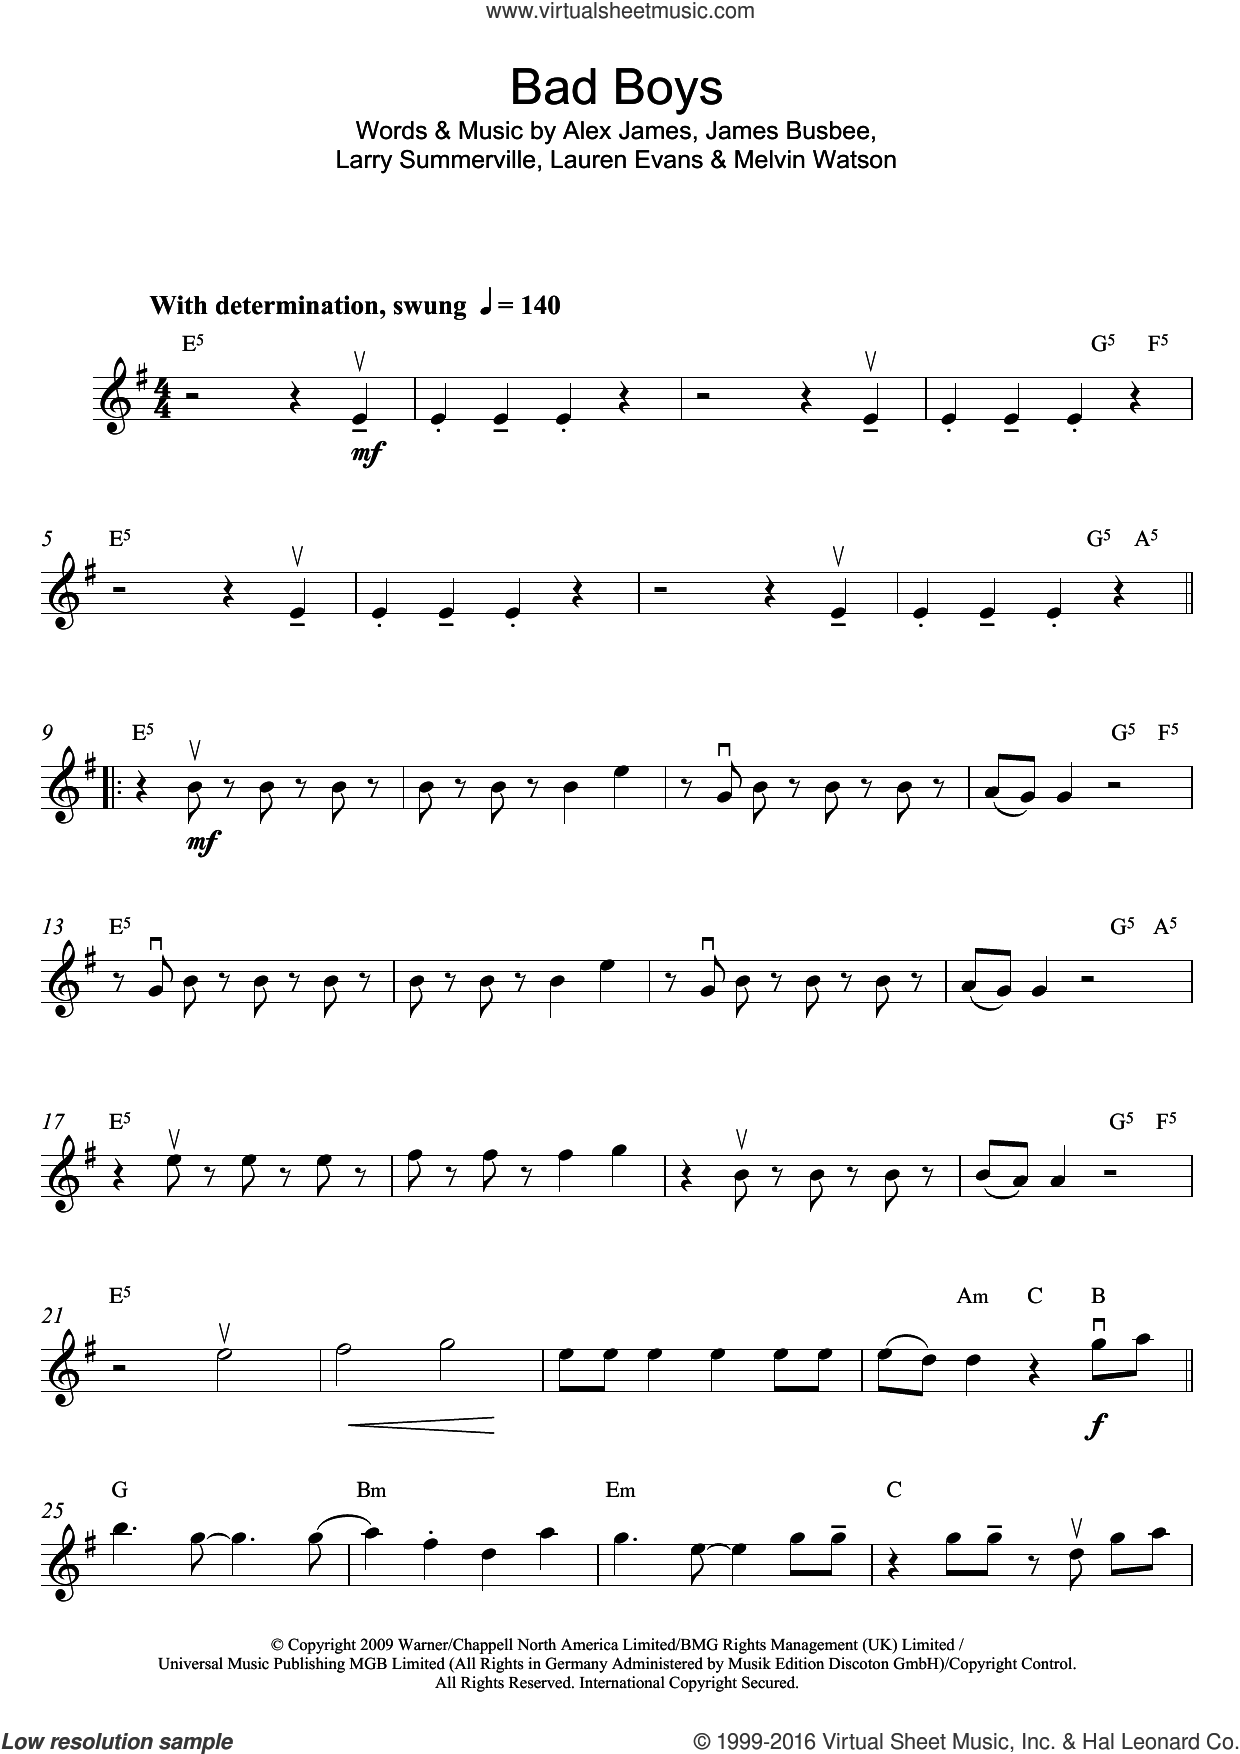 Bad Boys sheet music for violin solo by Alexandra Burke, Alex James, James Busbee, Larry Summerville, Lauren Evans and Melvin Watson, intermediate